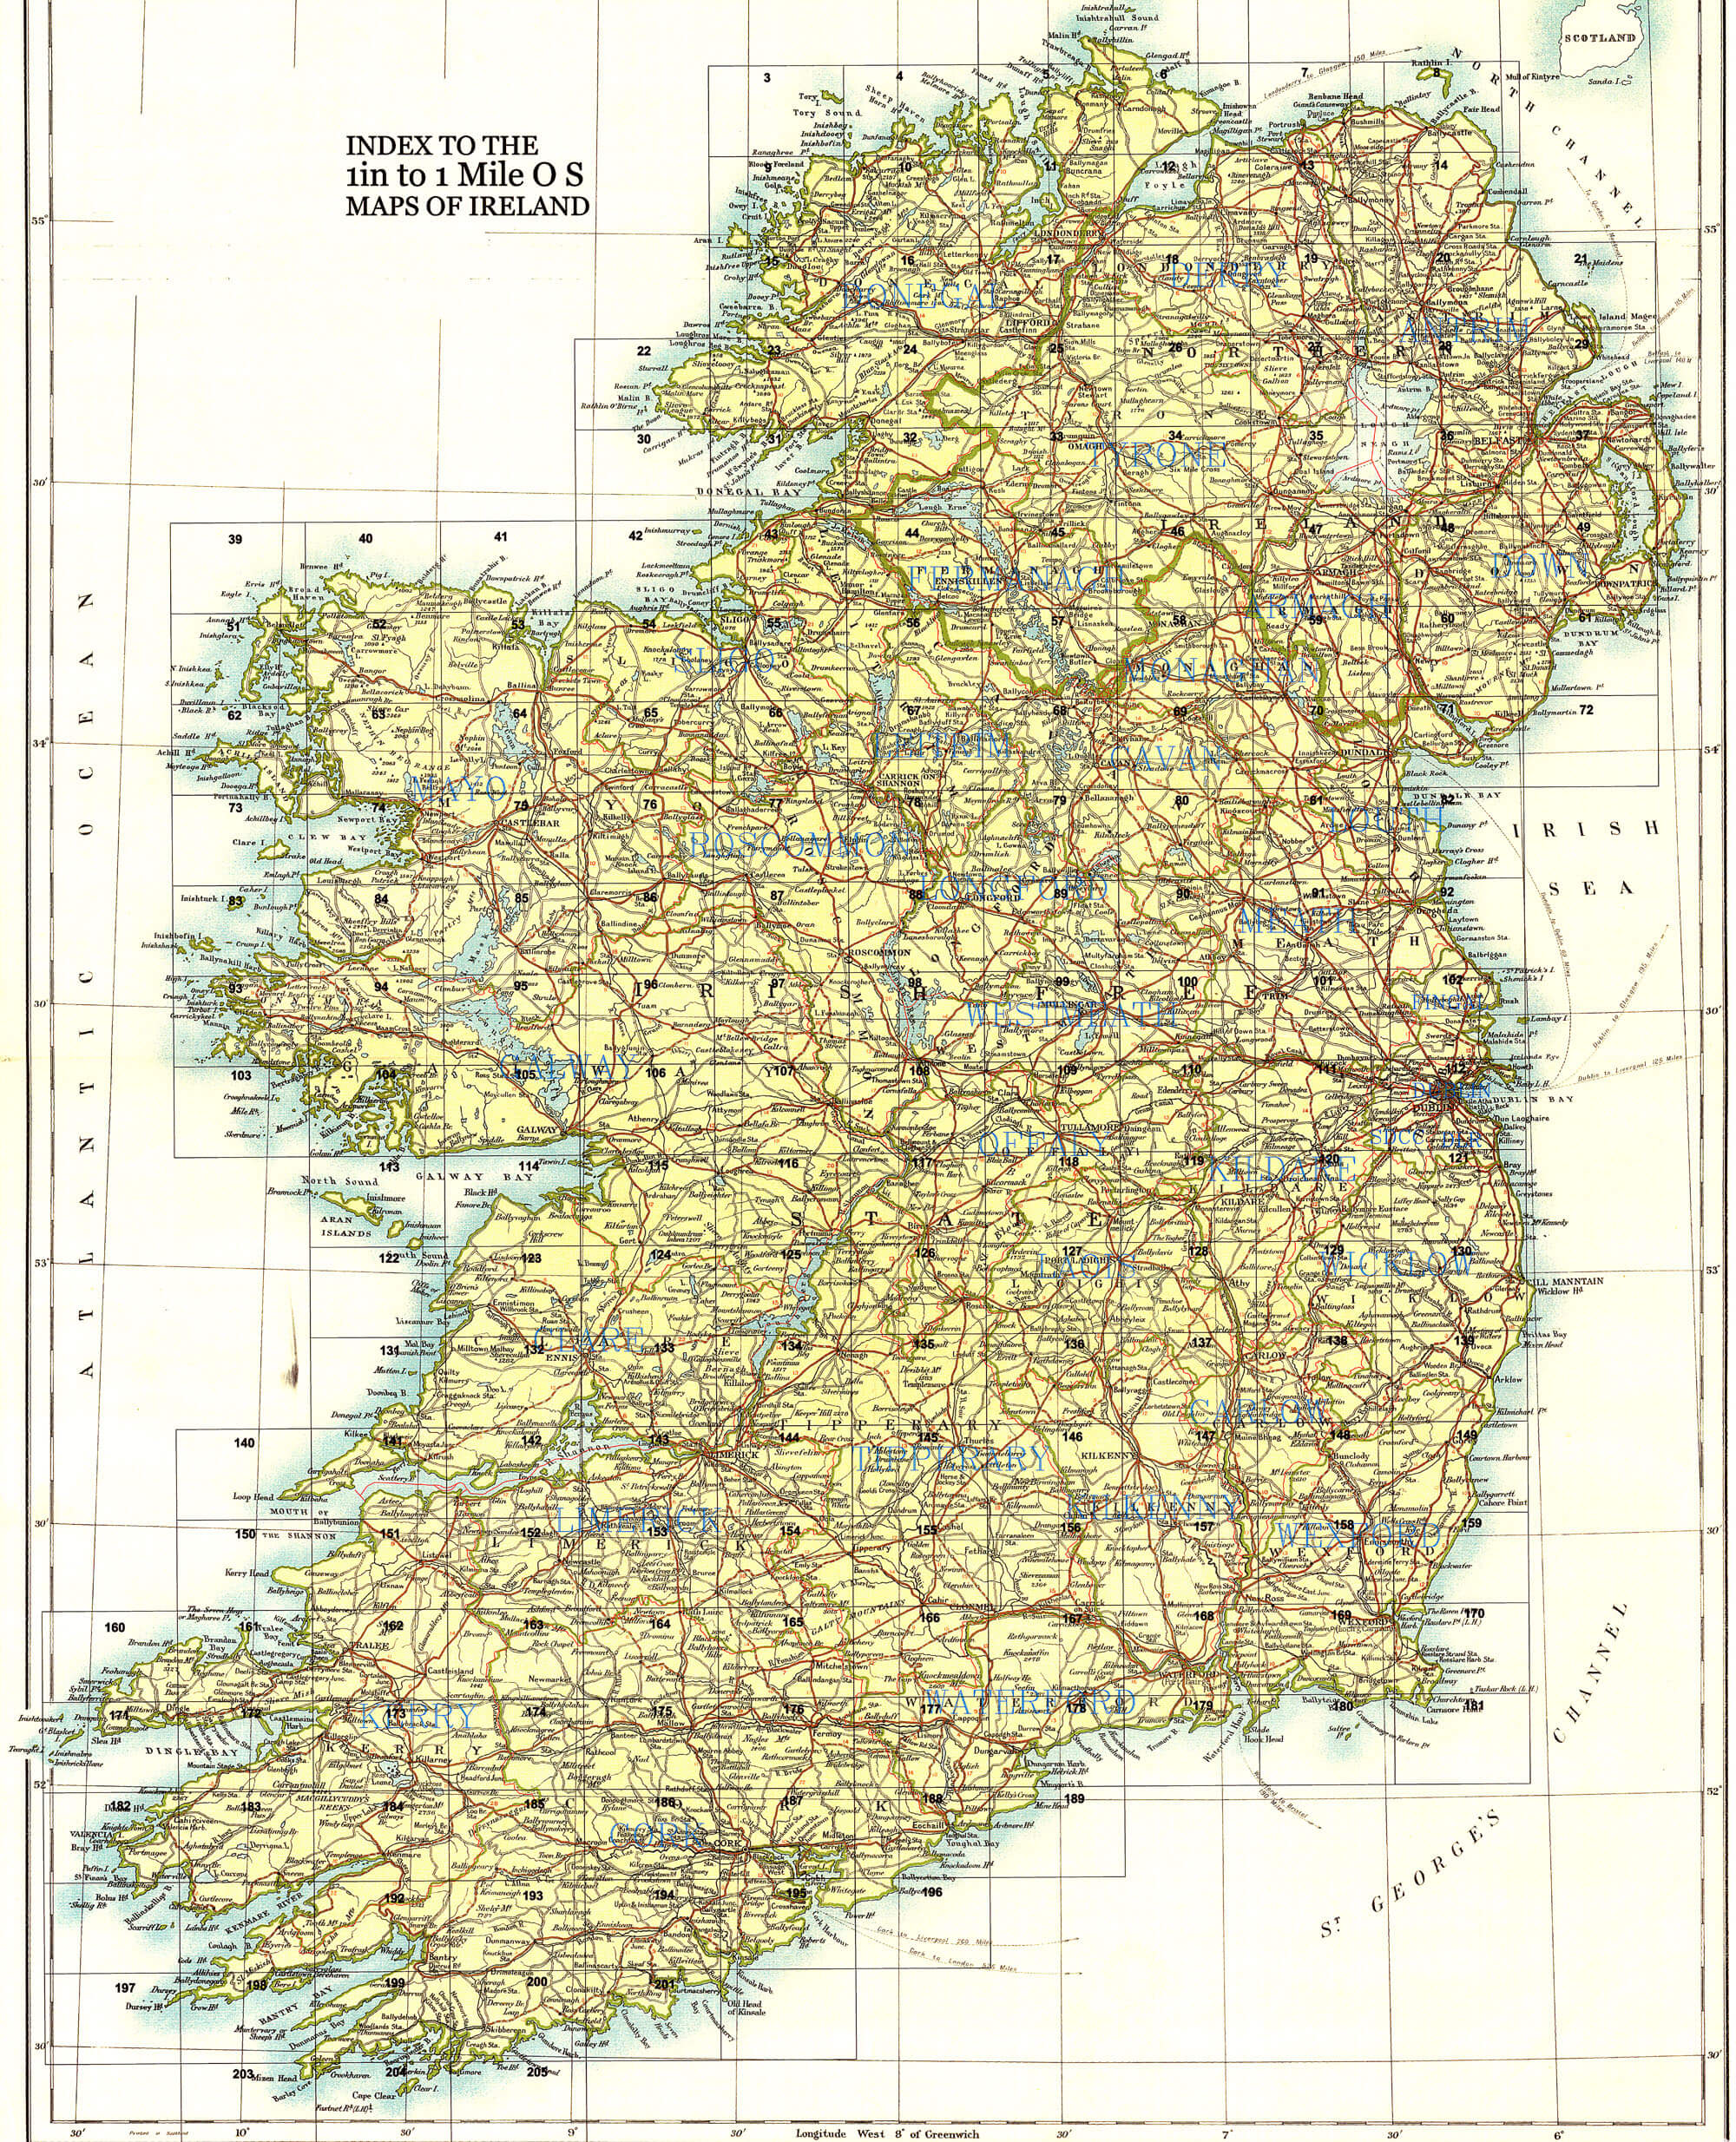 Osi Map Of Ireland.Ireland 1in Topographic Col Abl 1907 Sheets 101 To 150 L Brown